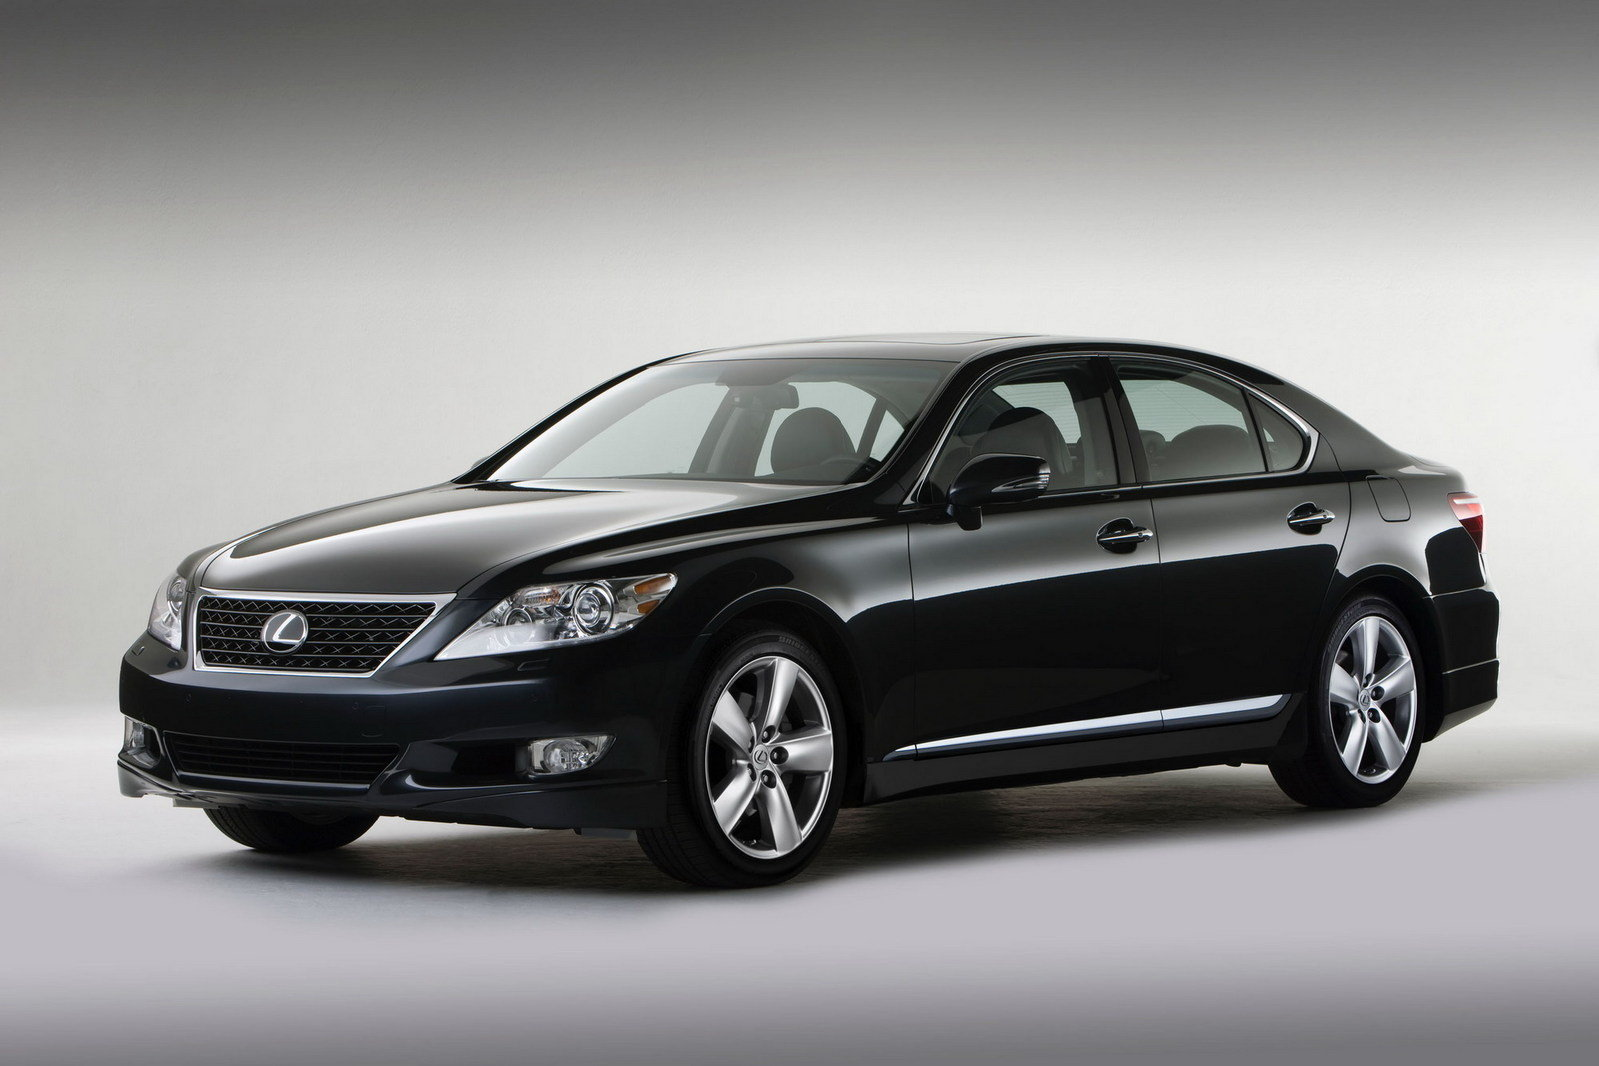 2011 lexus ls 460 touring edition review top speed. Black Bedroom Furniture Sets. Home Design Ideas